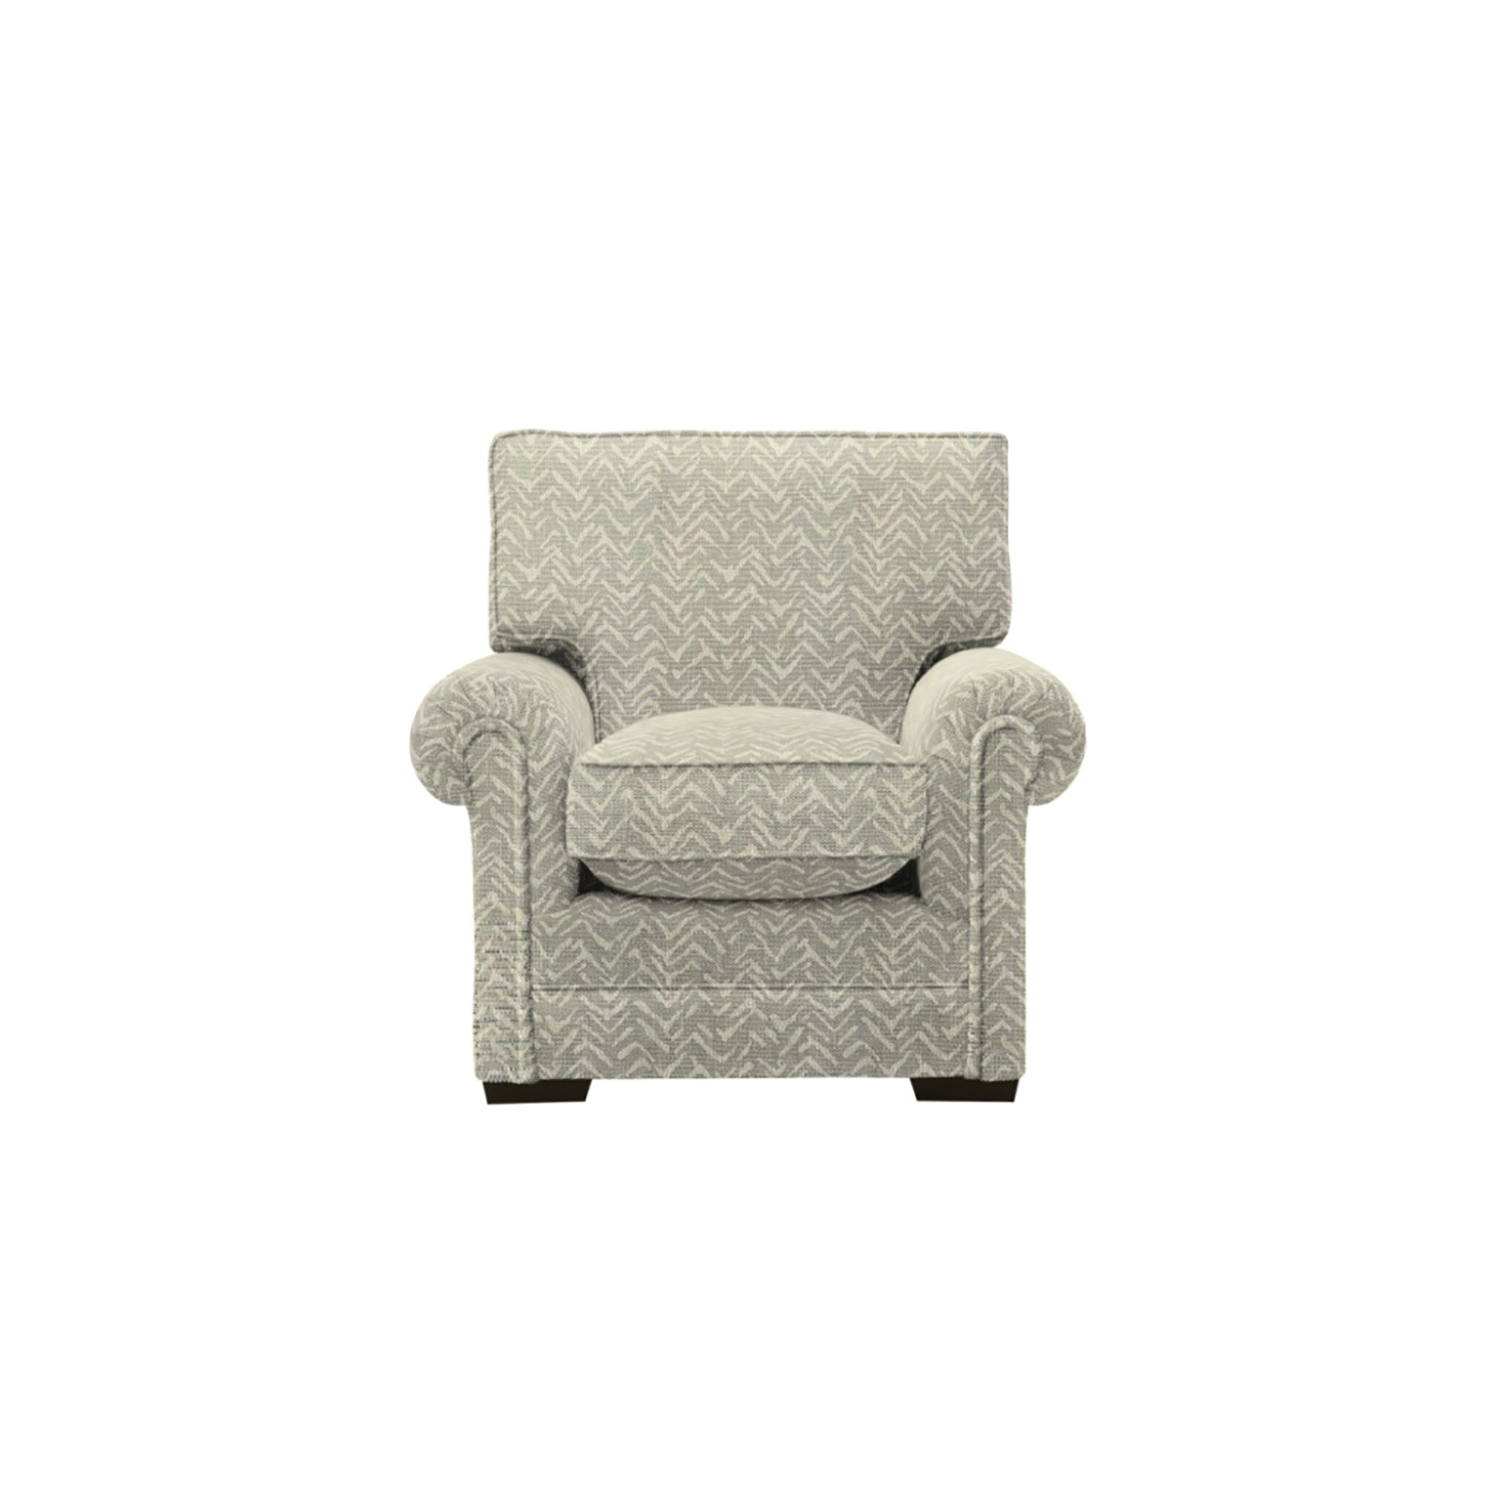 Image of Parker Knoll Canterbury Fabric Armchair, Gower Grey